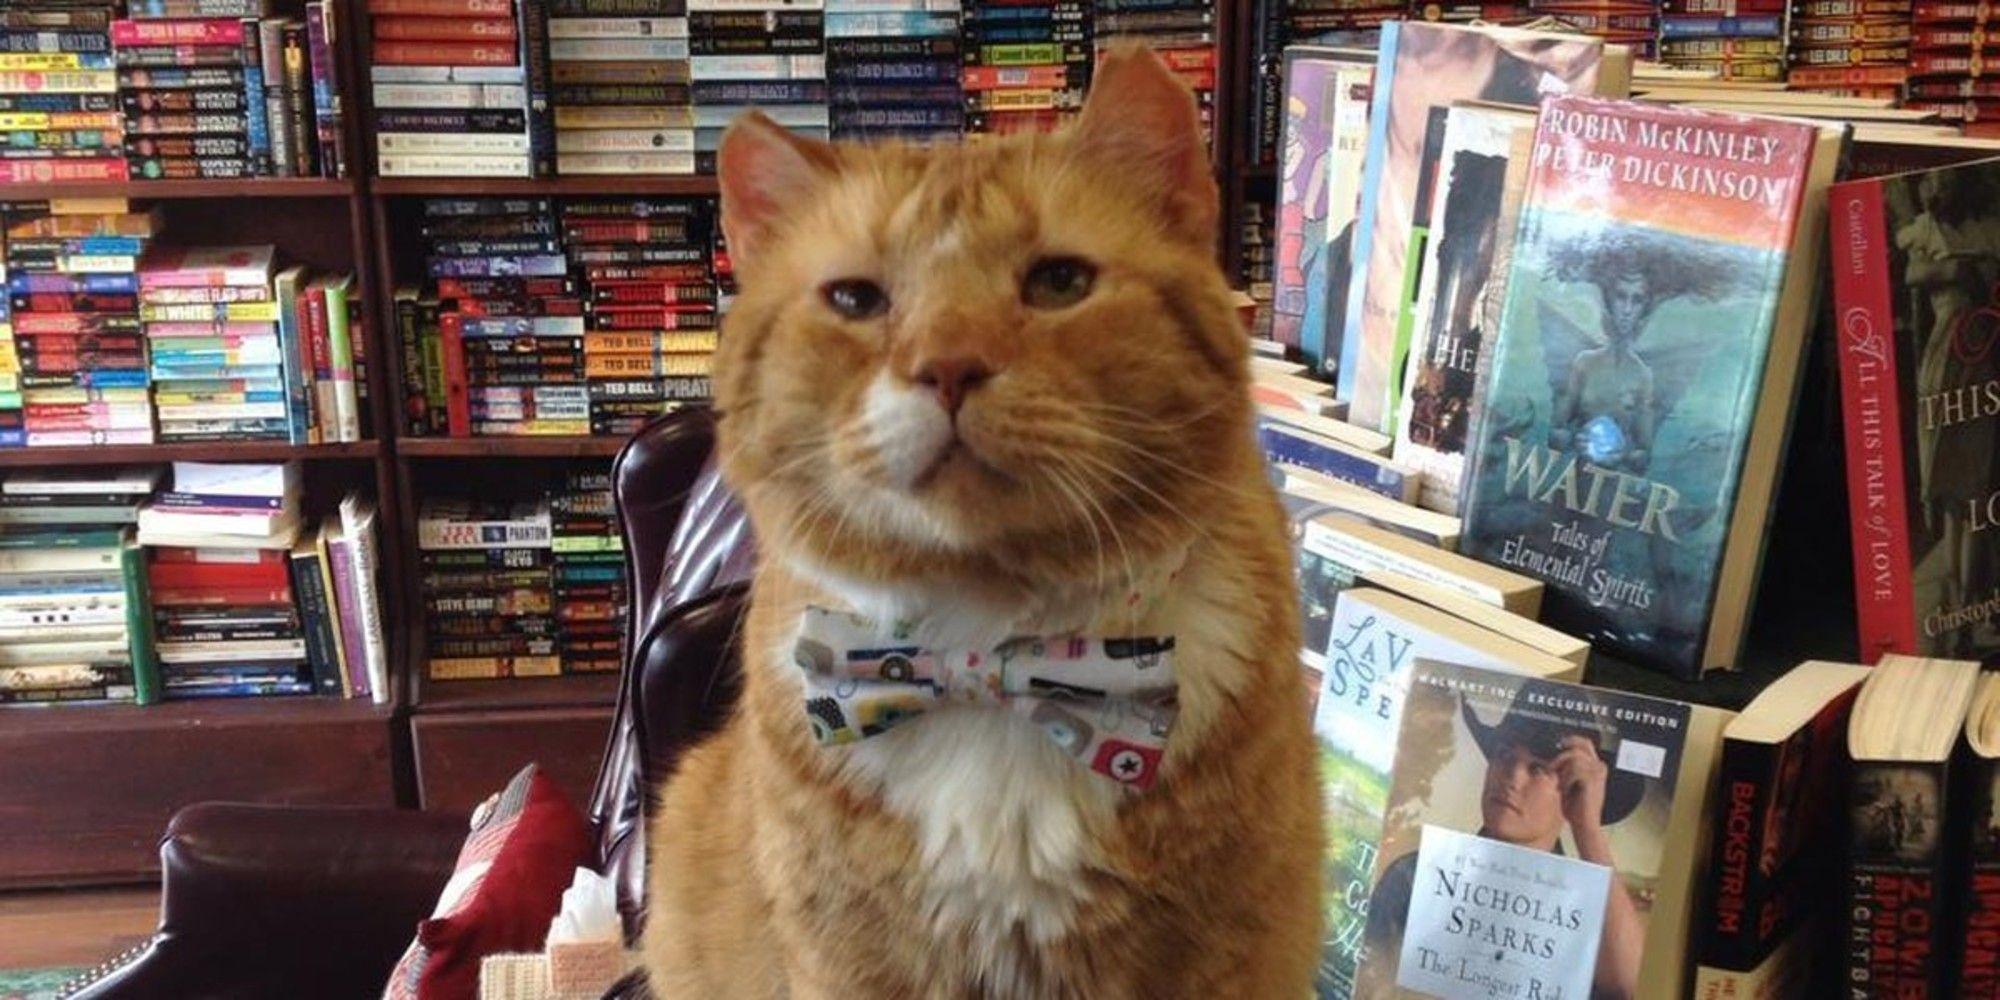 Shelter Cat Was Given A Chance Now 14 He Gives Back To People Every Day At Book Store In 2020 Bookstore Cats Cat Shelter Cat Books